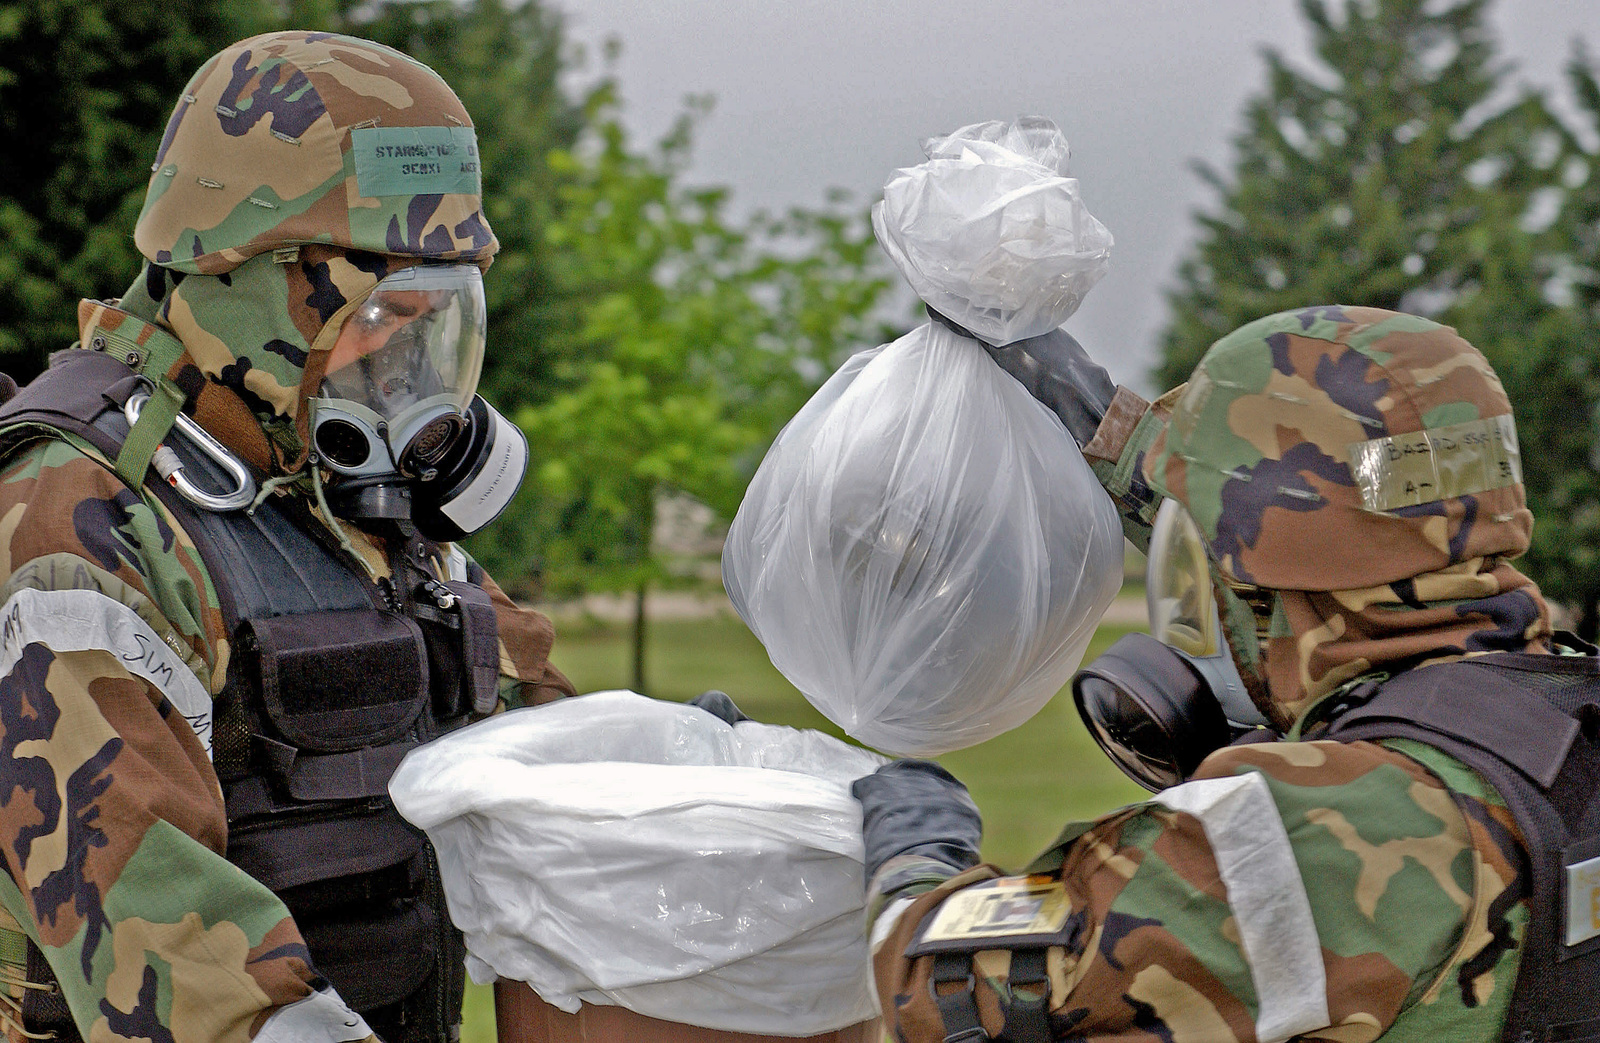 Dressed in Mission-Oriented Protective Postures level-4 (MOPP-4) gear, US Air Force (USAF) SENIOR AIRMAN Anton Starkovich (left) and STAFF Sergeant (SSGT) William Baird bag a simulated unexploded ordnance in order to dispose of it, during a Tactical Evaluation at Royal Air Force (RAF) Lakenheath, England (ENG)